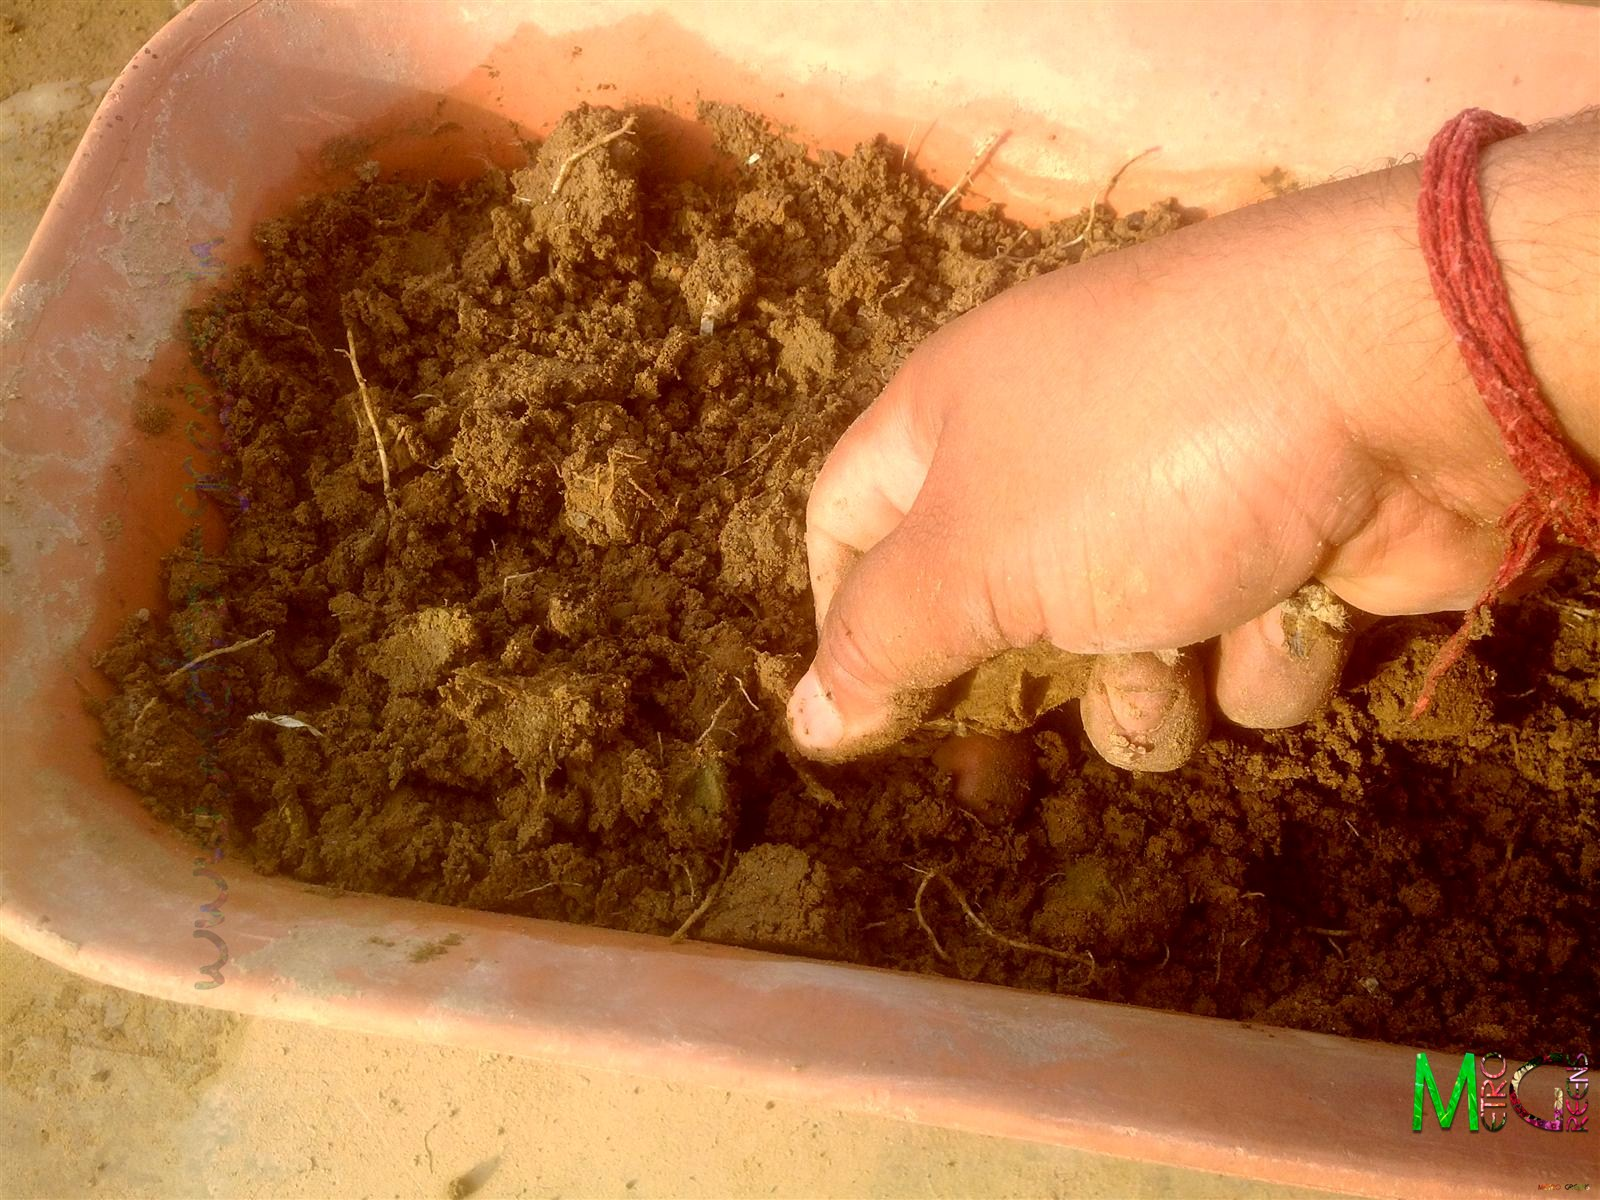 Metro Greens: Preparing Soil